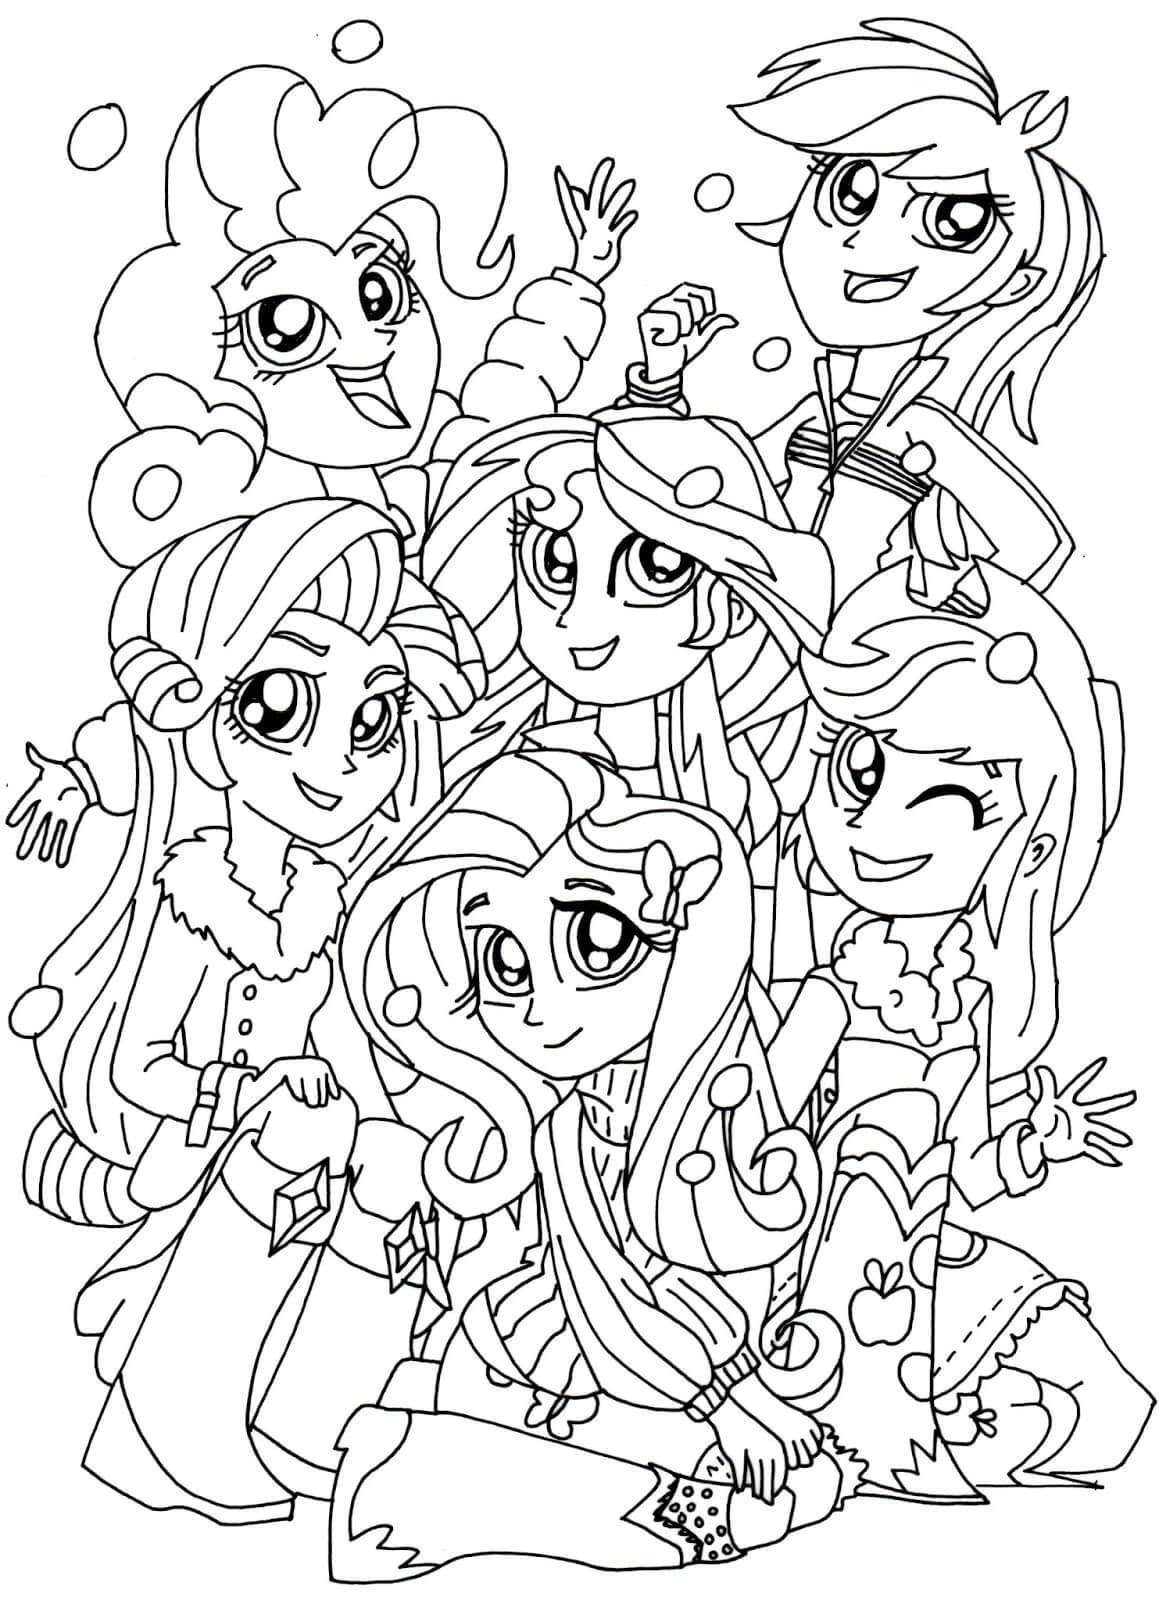 Best ideas about Coloring Pages For Girls Games . Save or Pin My Little Pony Equestria Girls Coloring Pages Now.